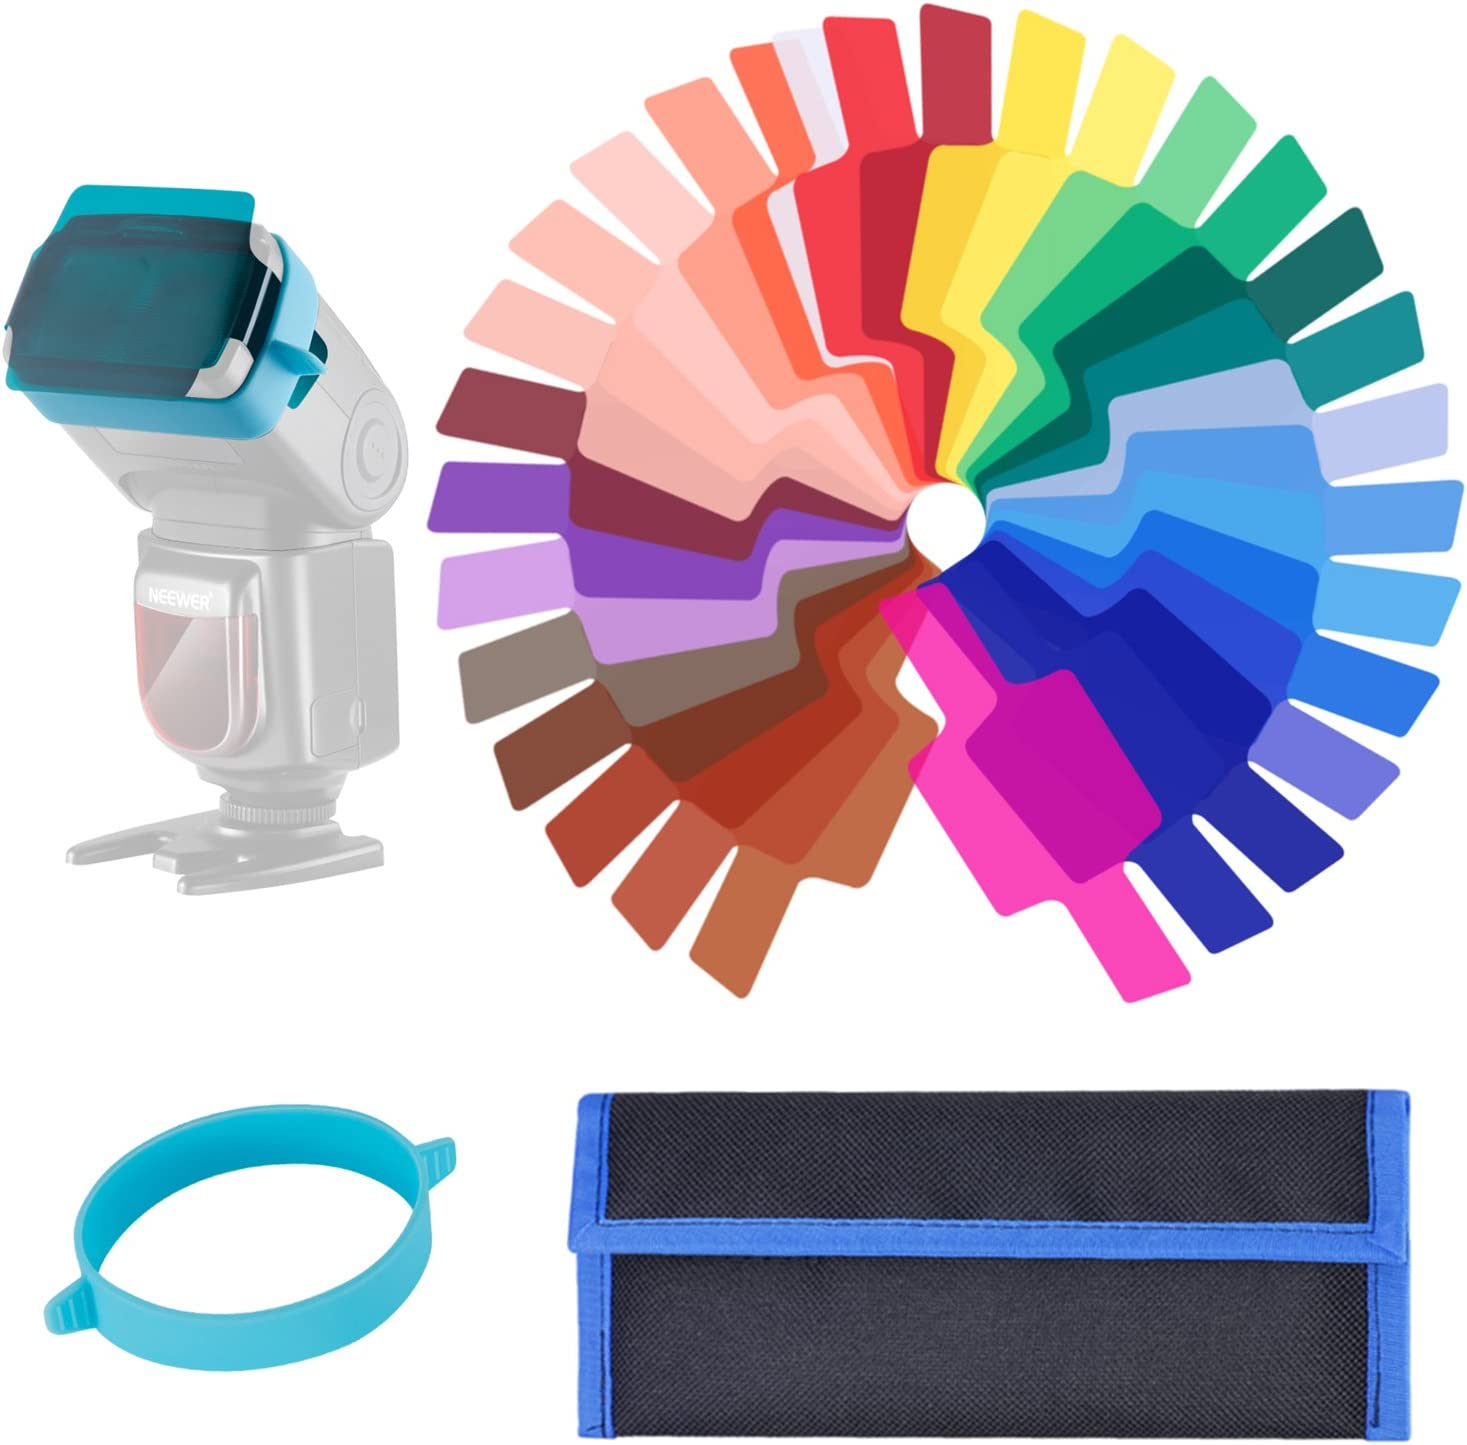 Transparent Color Correction Lighting Film Plastic Sheets with One Attachment Band for Photo Studio Strobe Flash Light Neewer 30 Pieces Camera Flash Speedlite Lighting Color Gel Filter Kit